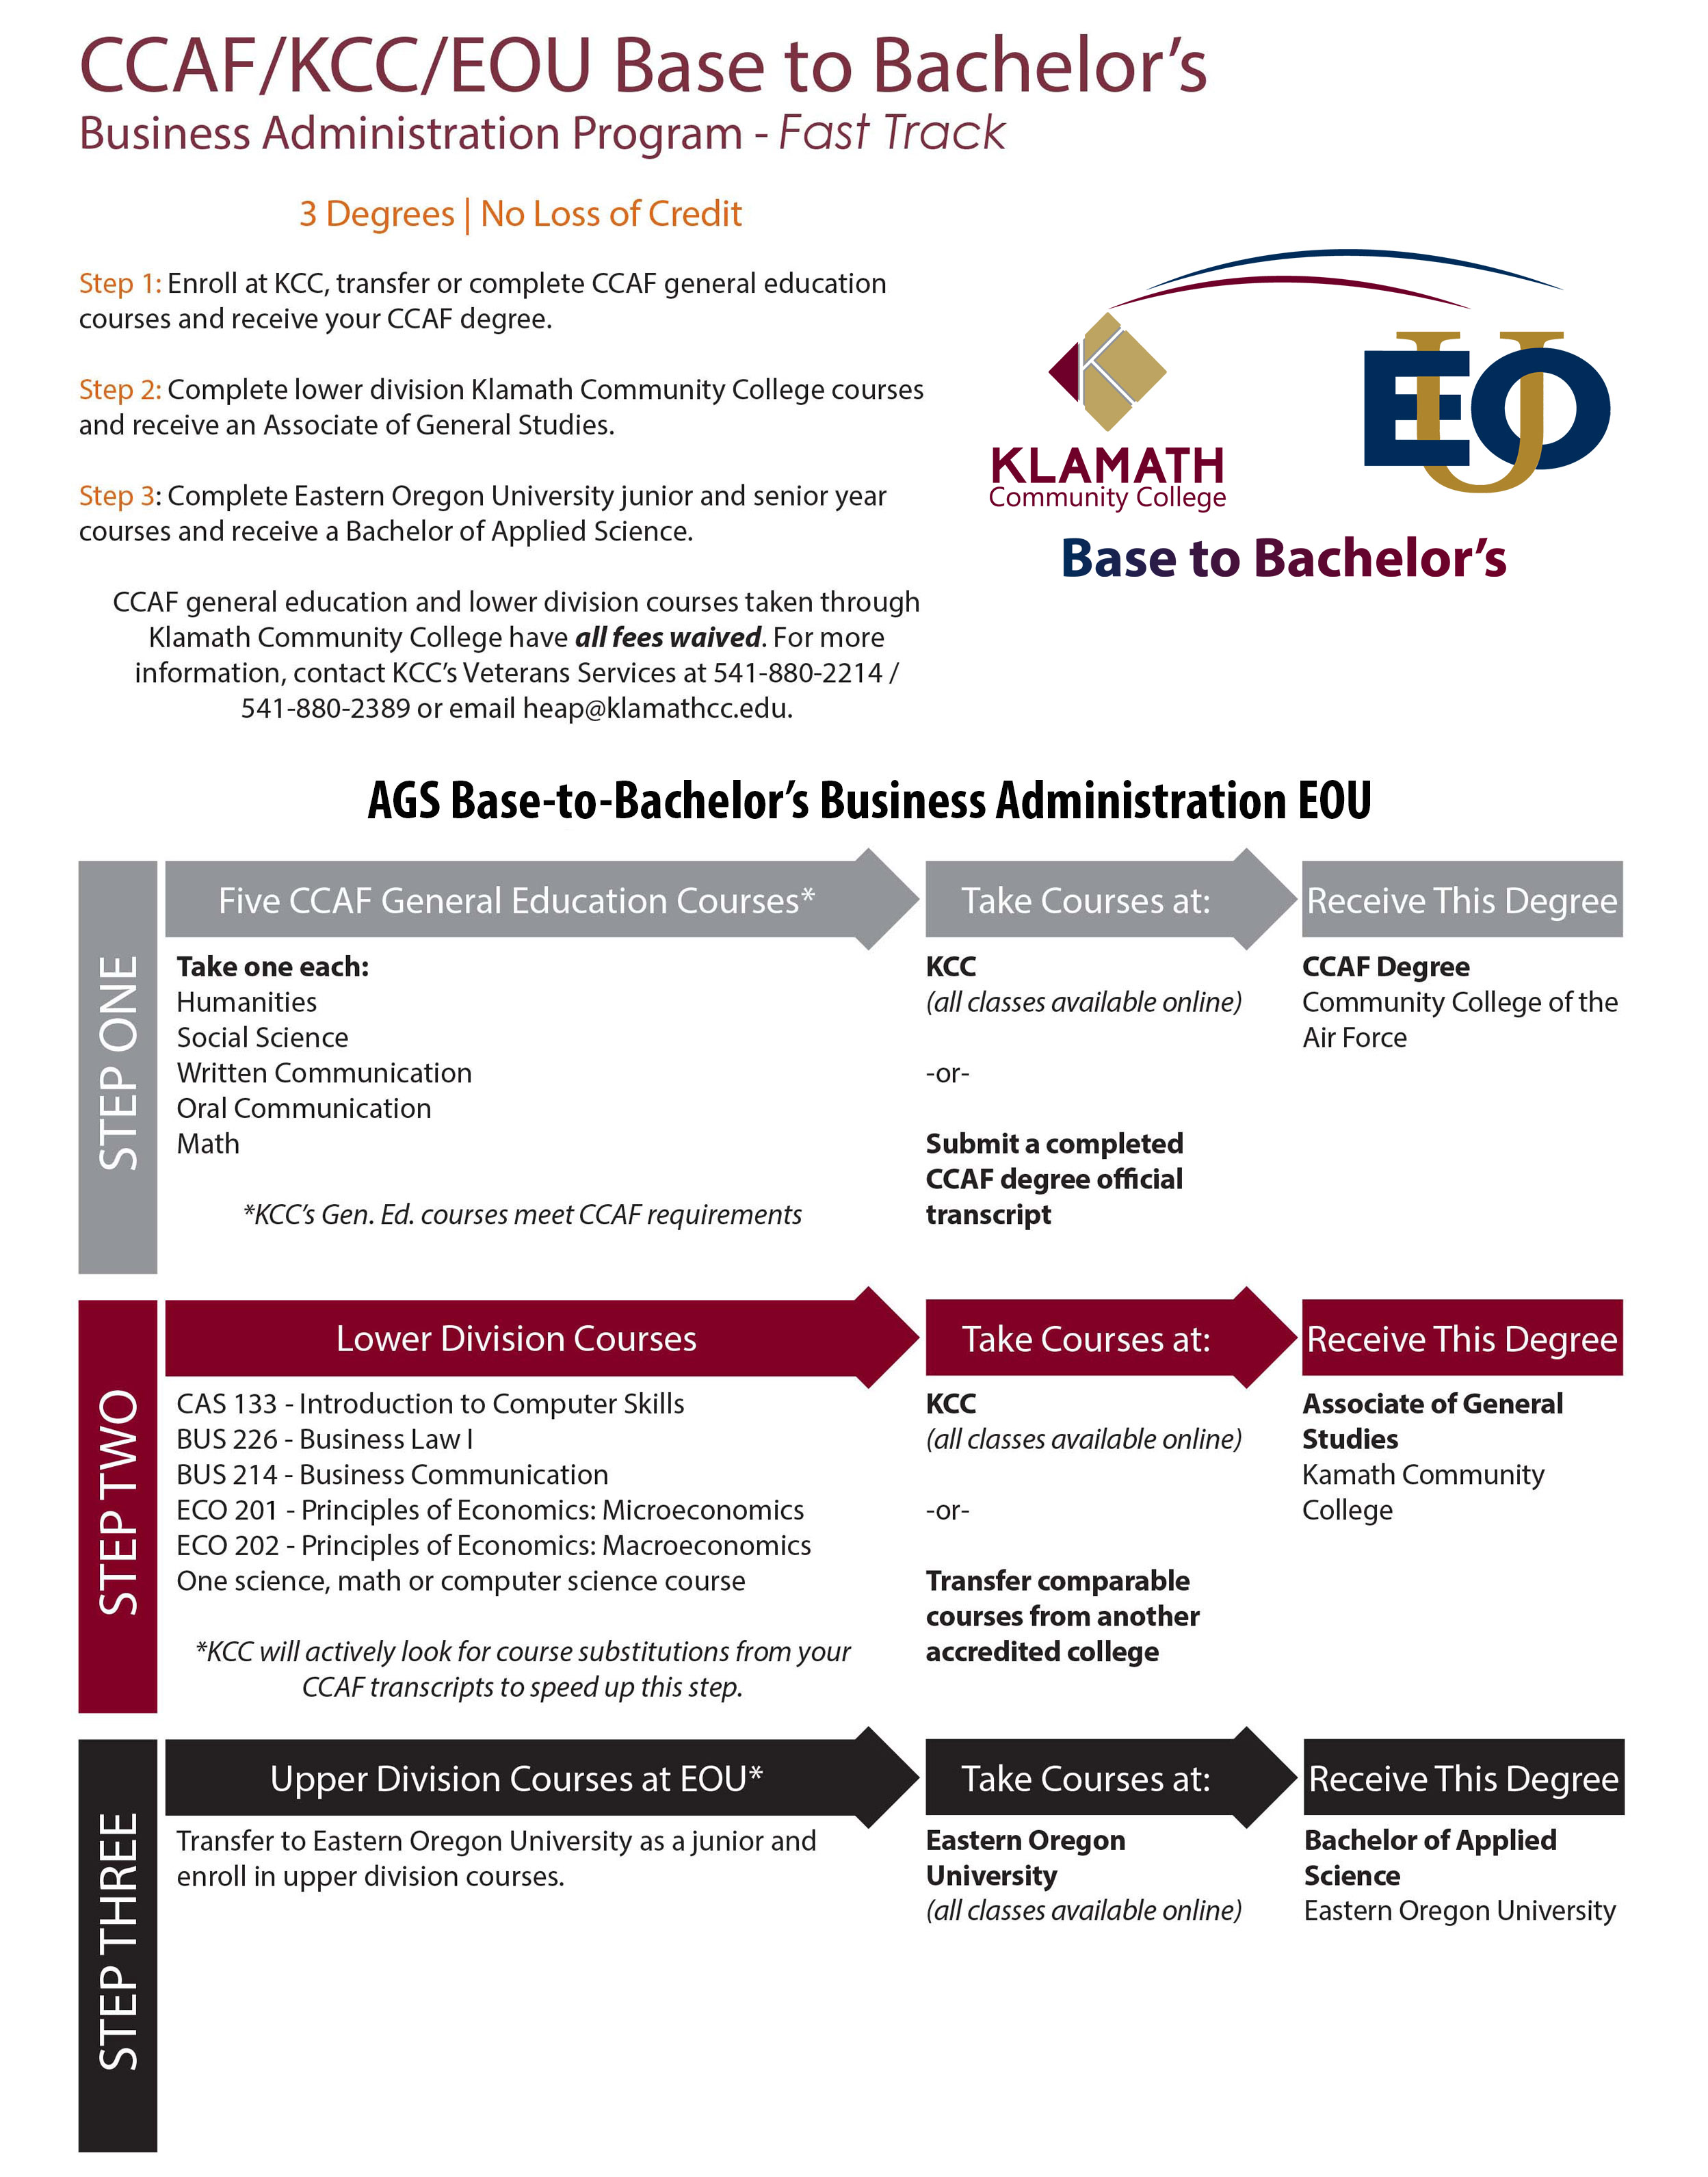 Business Administration fast track